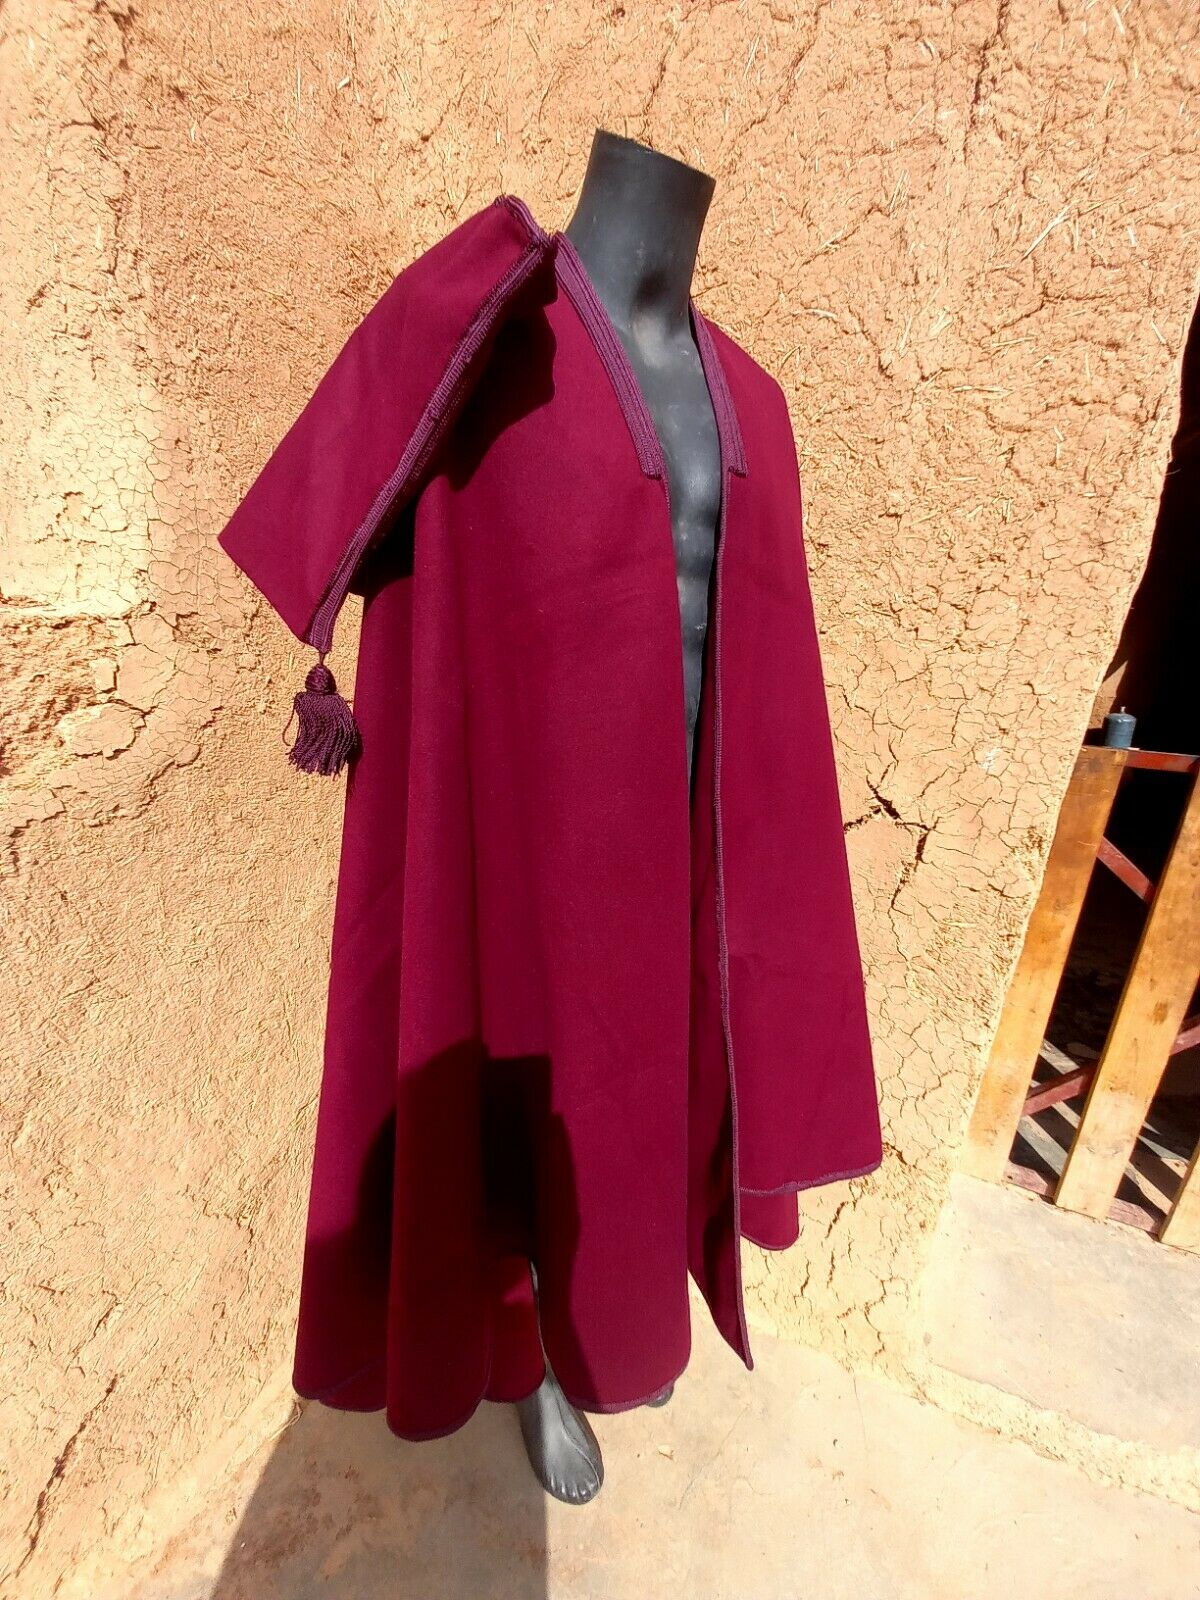 Last one Luxury hooded Cape silham hooded cloak burnouse poncho 150cm length